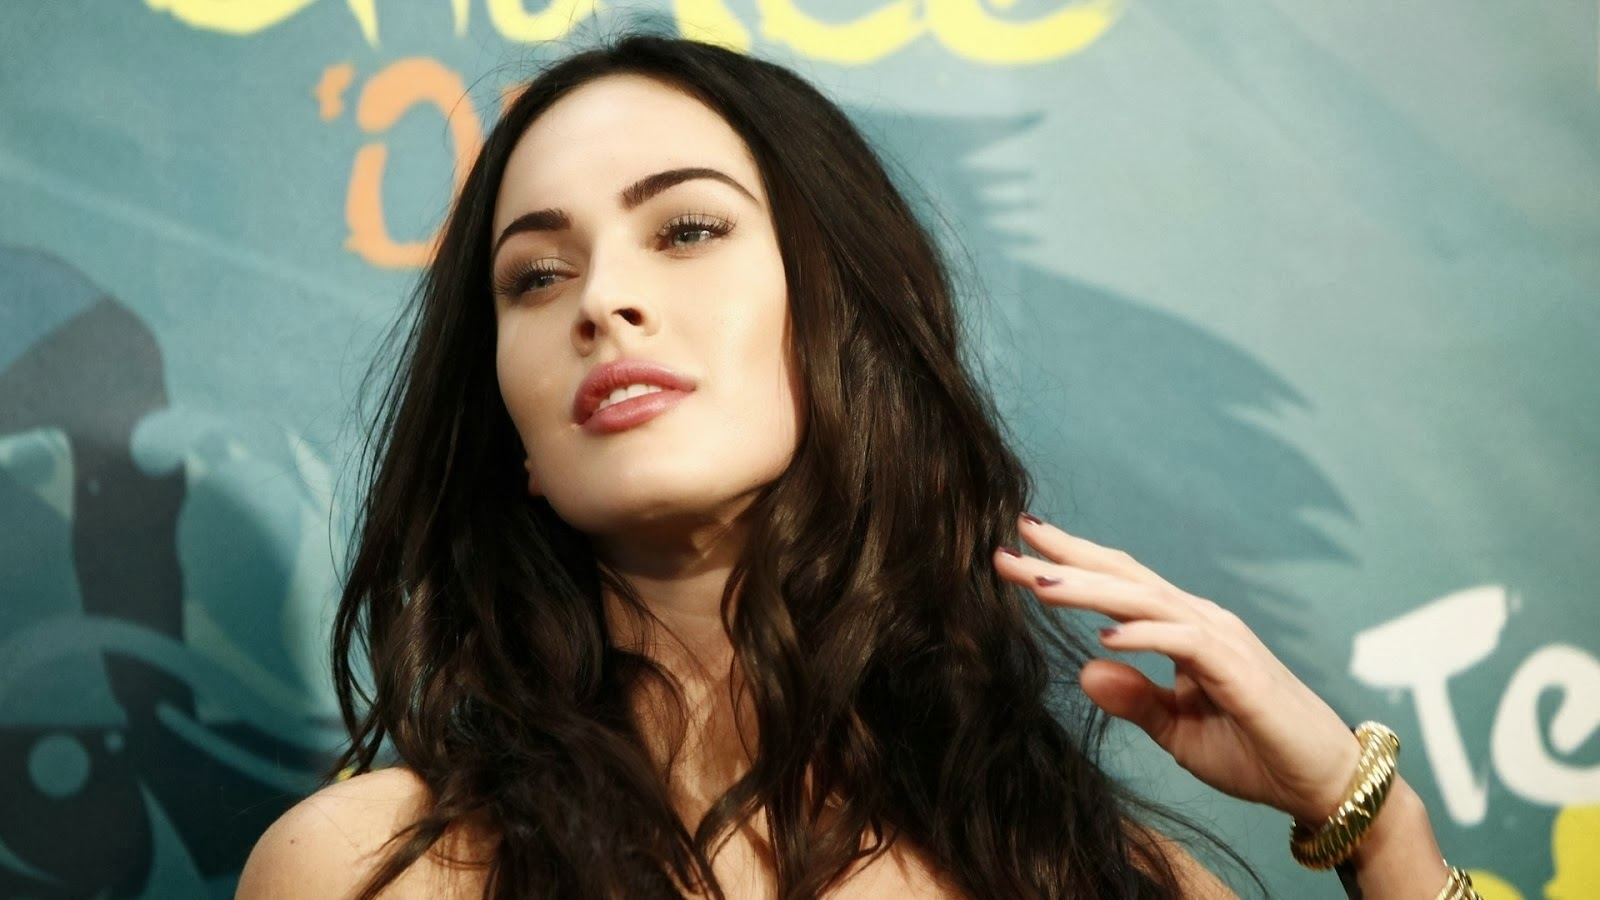 fox hd wallpapers in 1080p megan fox hd wallpapers in 1080p megan fox 1600x900